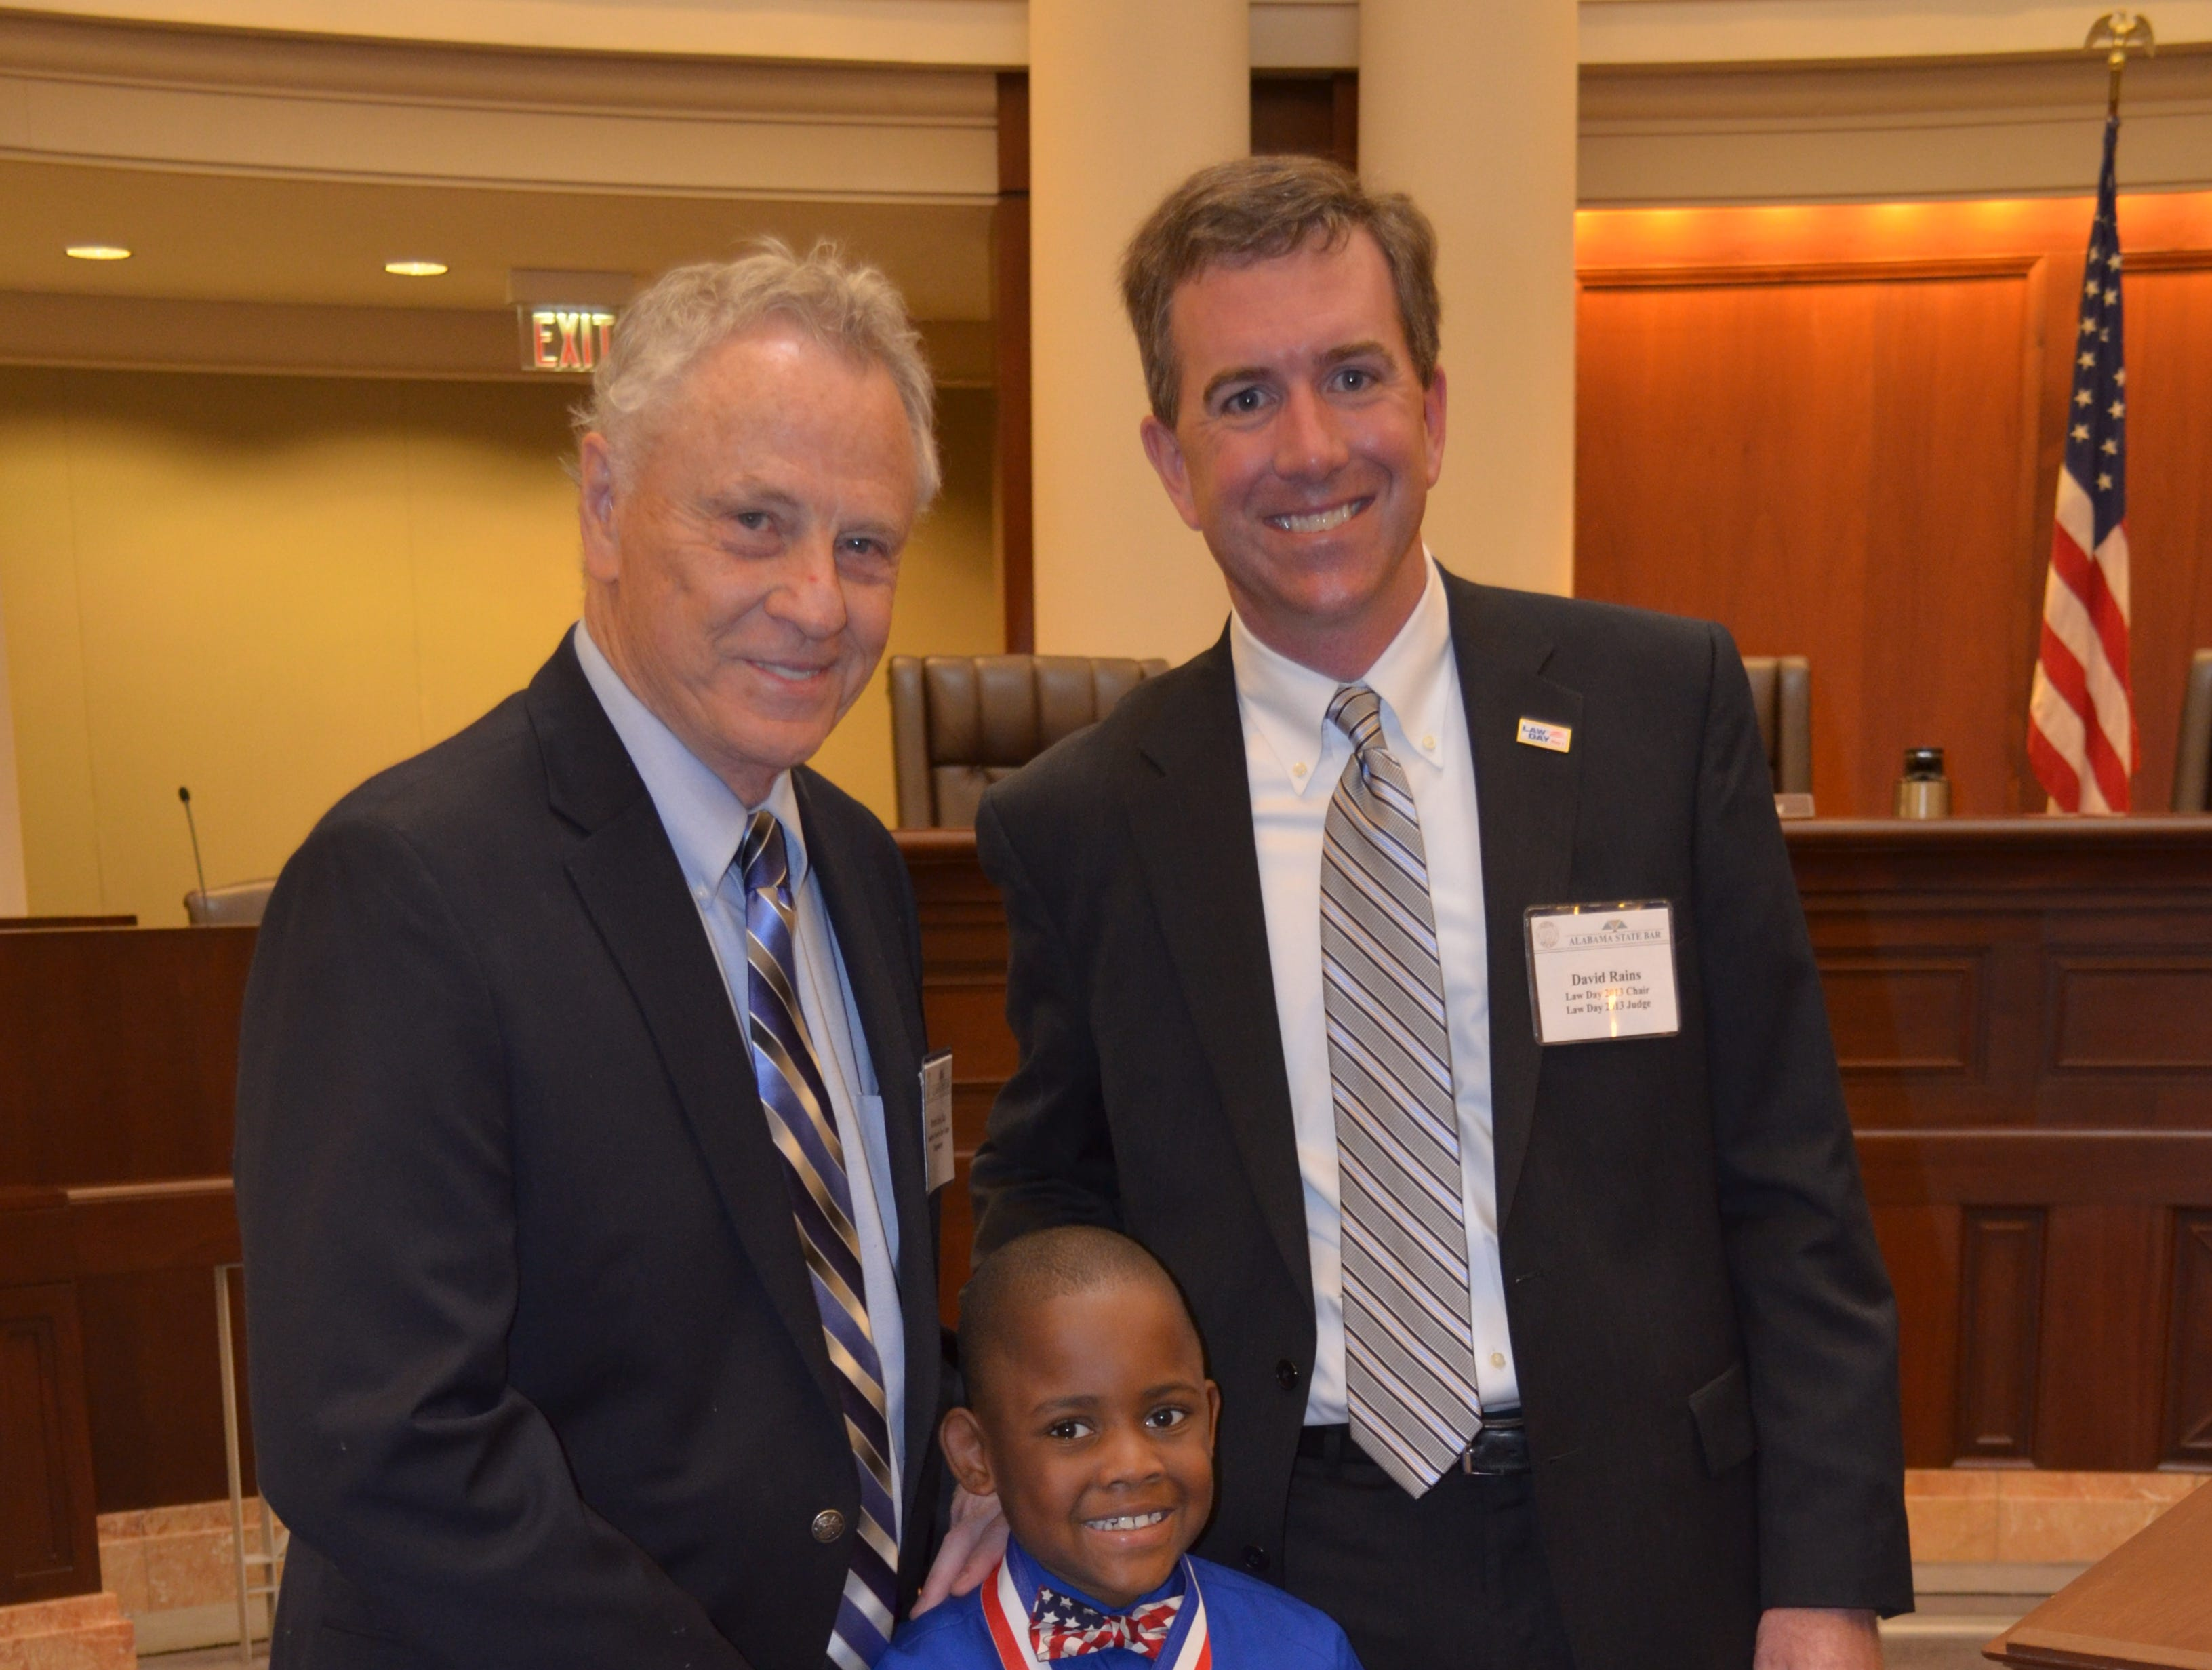 Morris Dees, left, and David Rains present a poster award to Jelan Smith. Alvin Benn/Special to the Advertiser Morris Dees, left and David Rains present a poster award to Jelan (cq) Smith of Mixon Elementary School in Ozark at Wednesday's Law Day program. . 5-1-13